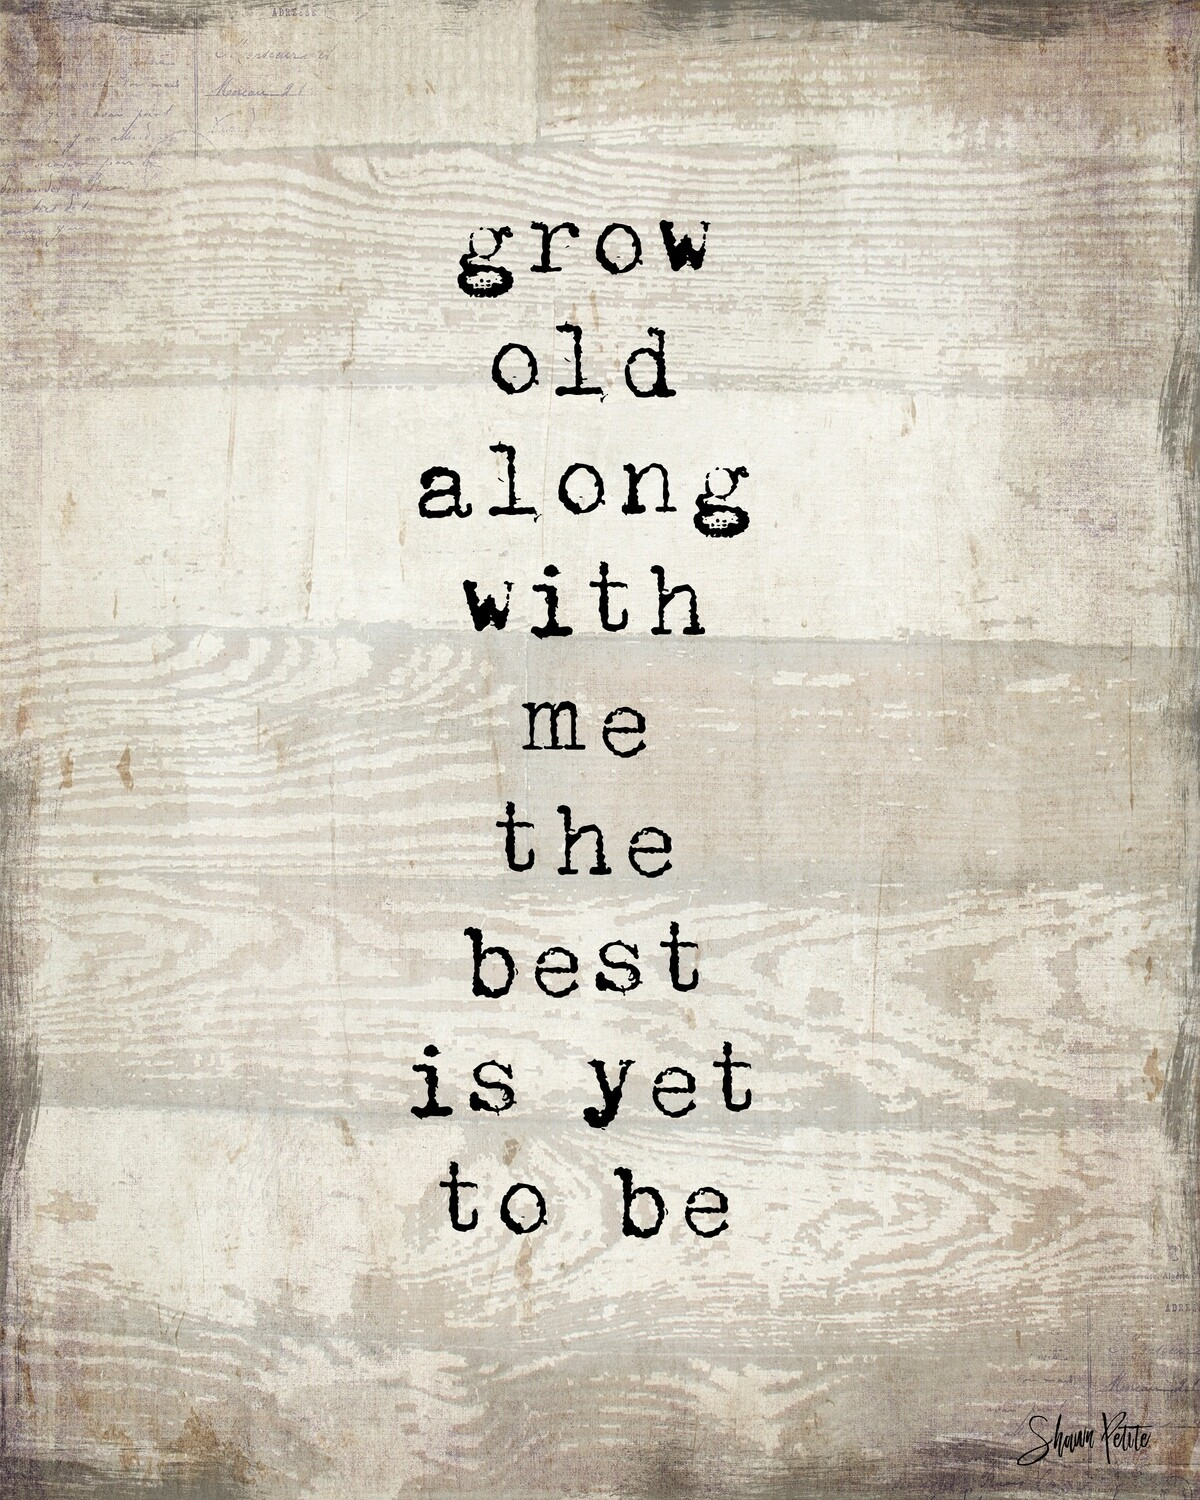 """""""Grow old along with me the best is yet to be"""" Print on Wood 5x7 Overstock"""